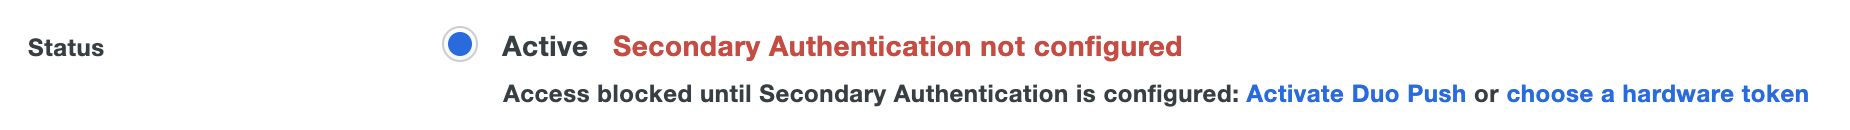 New Federal Admin Secondary Authentication